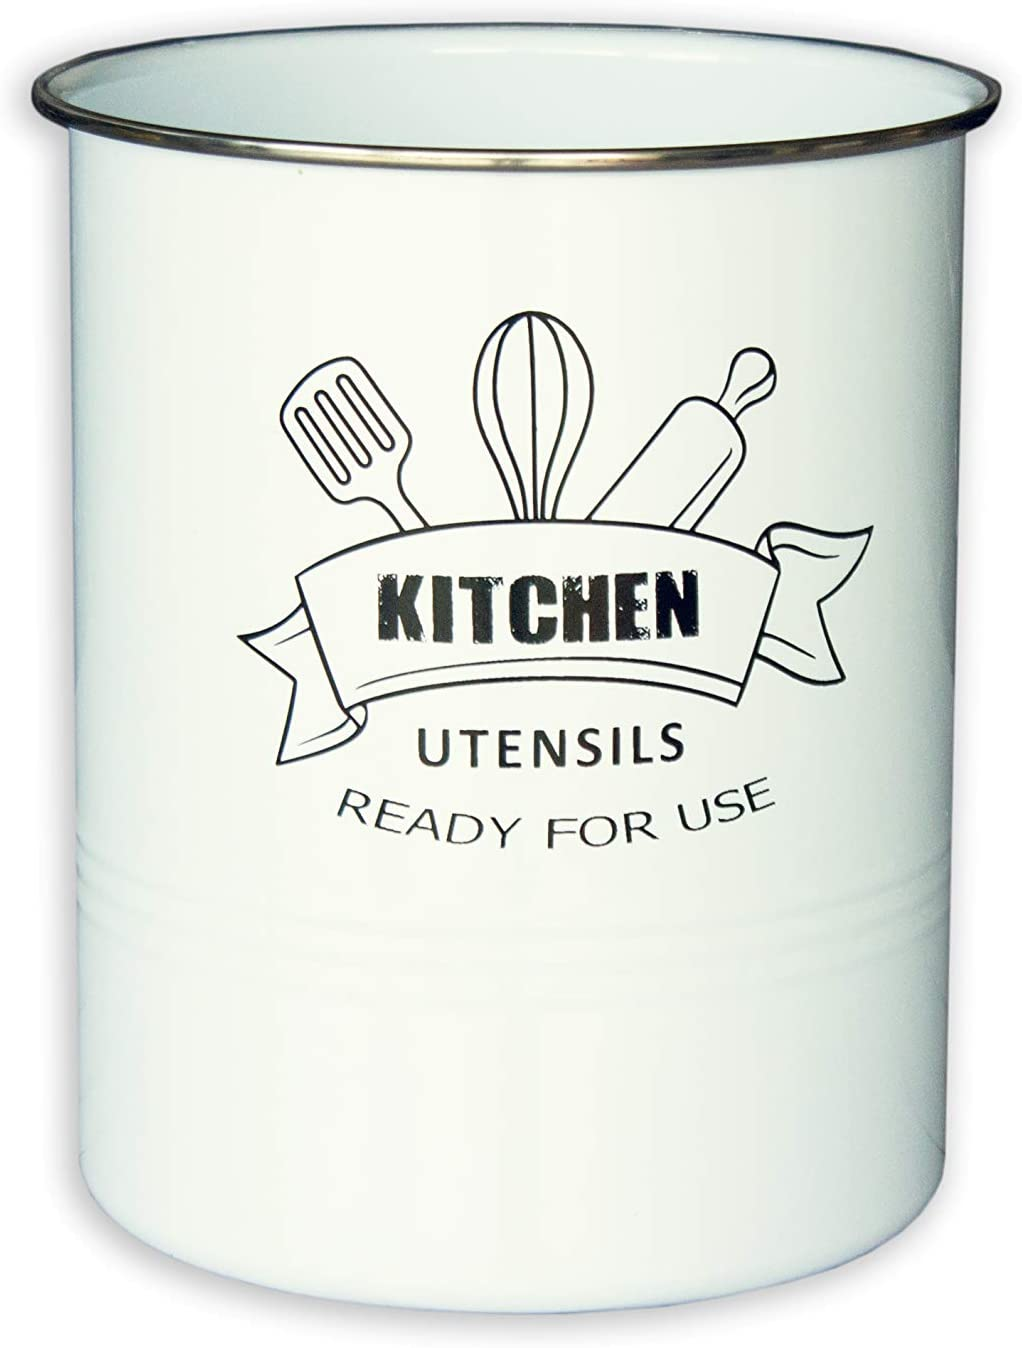 KITCHEN Max 73% OFF Utensil Holder for Countertop Stainless Complete Free Shipping with Large Stee